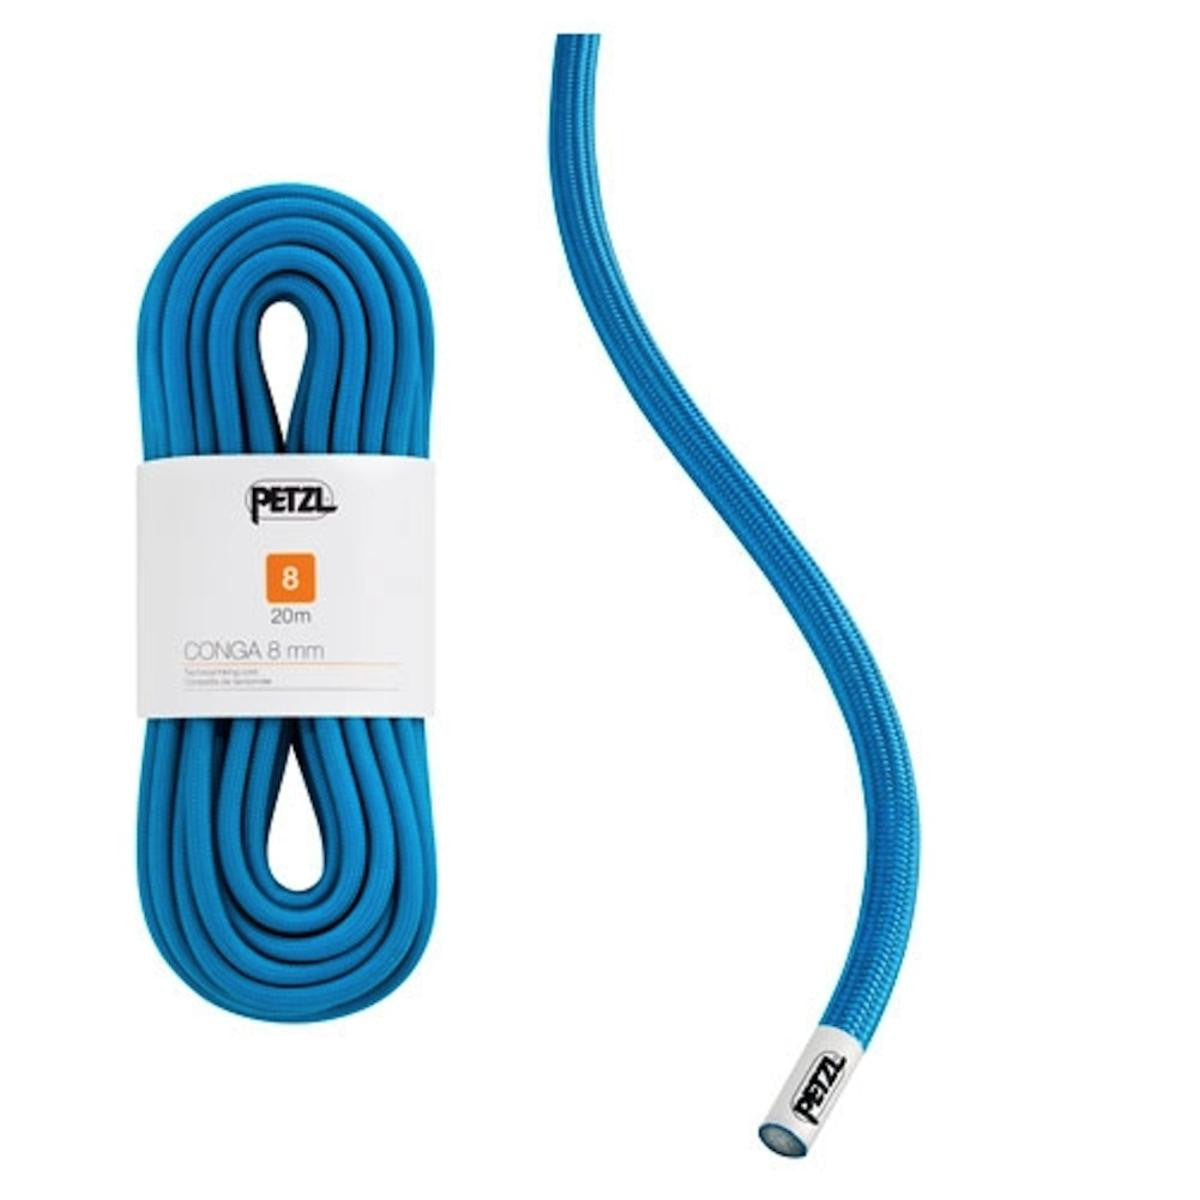 Petzl Conga 8mm Semi Static Cord